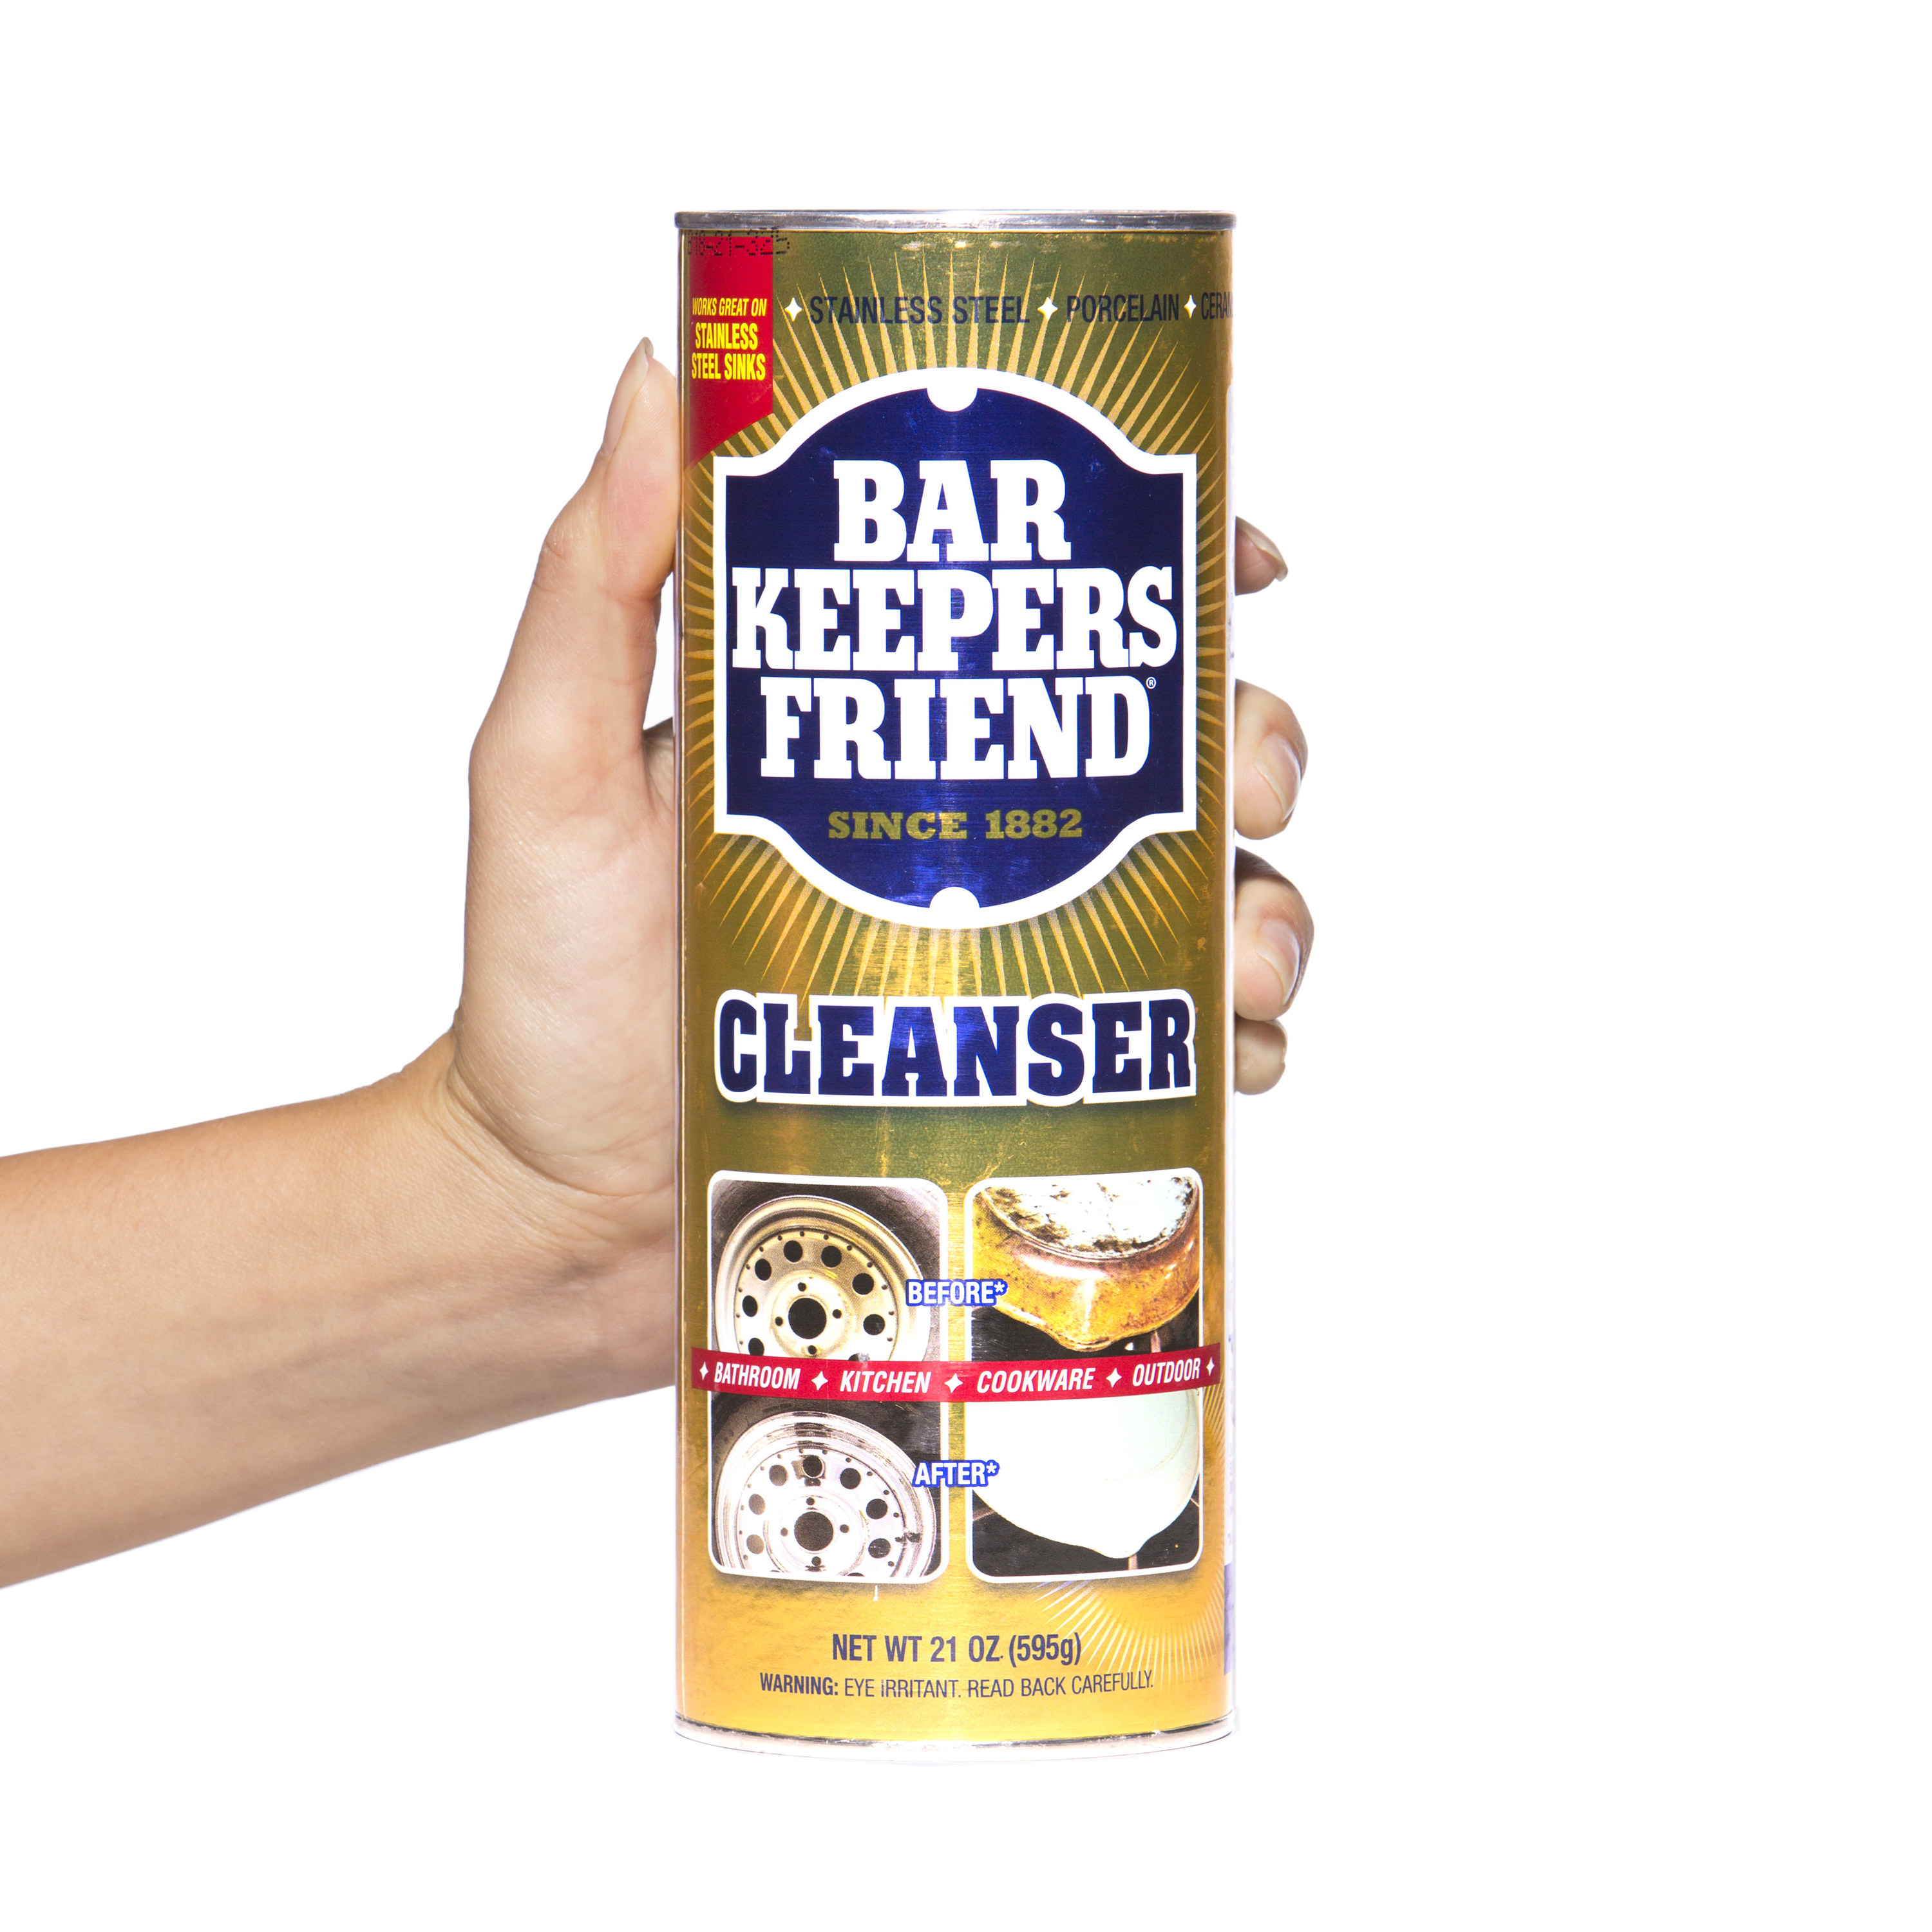 Product photo showing Bar Keepers Friend all-purpose cleanser outer packaging